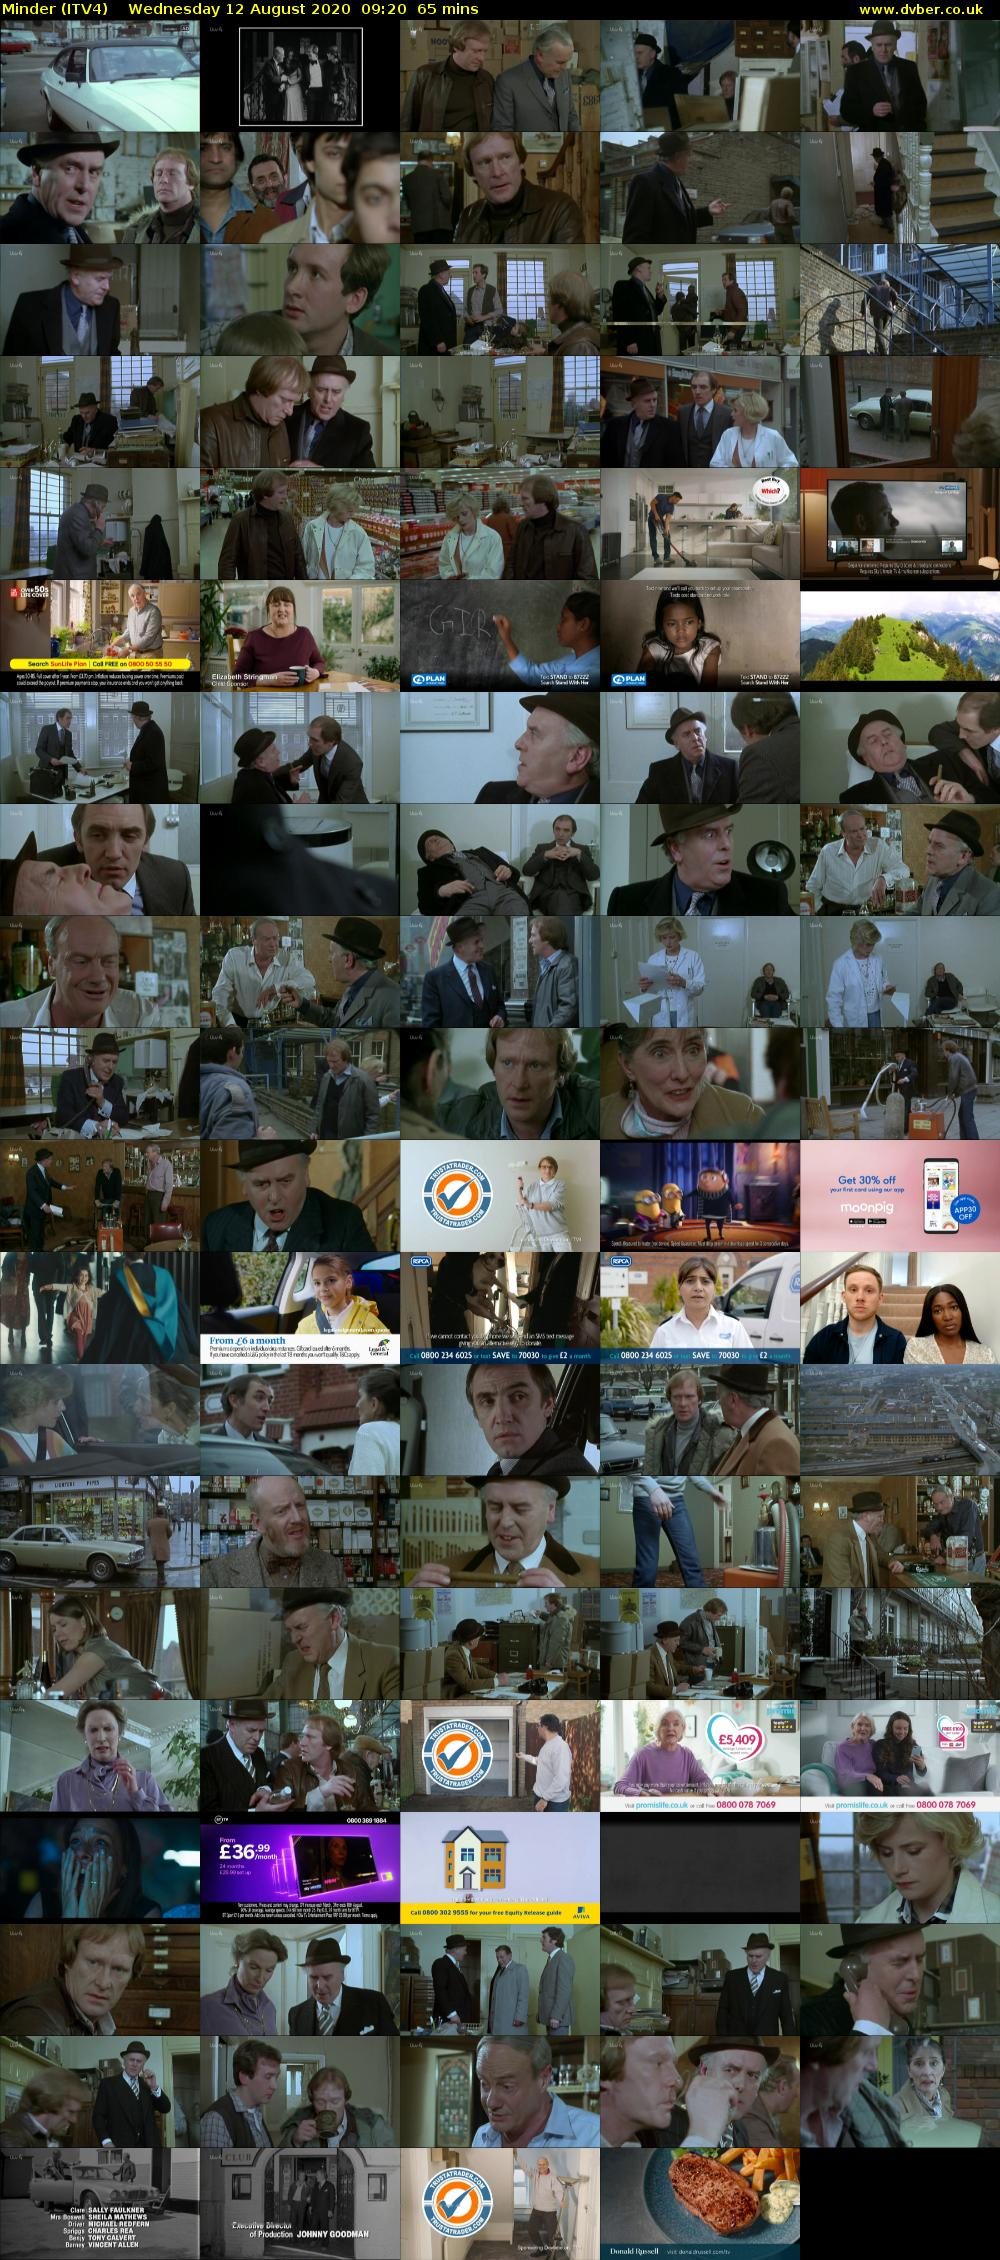 Minder (ITV4) Wednesday 12 August 2020 09:20 - 10:25